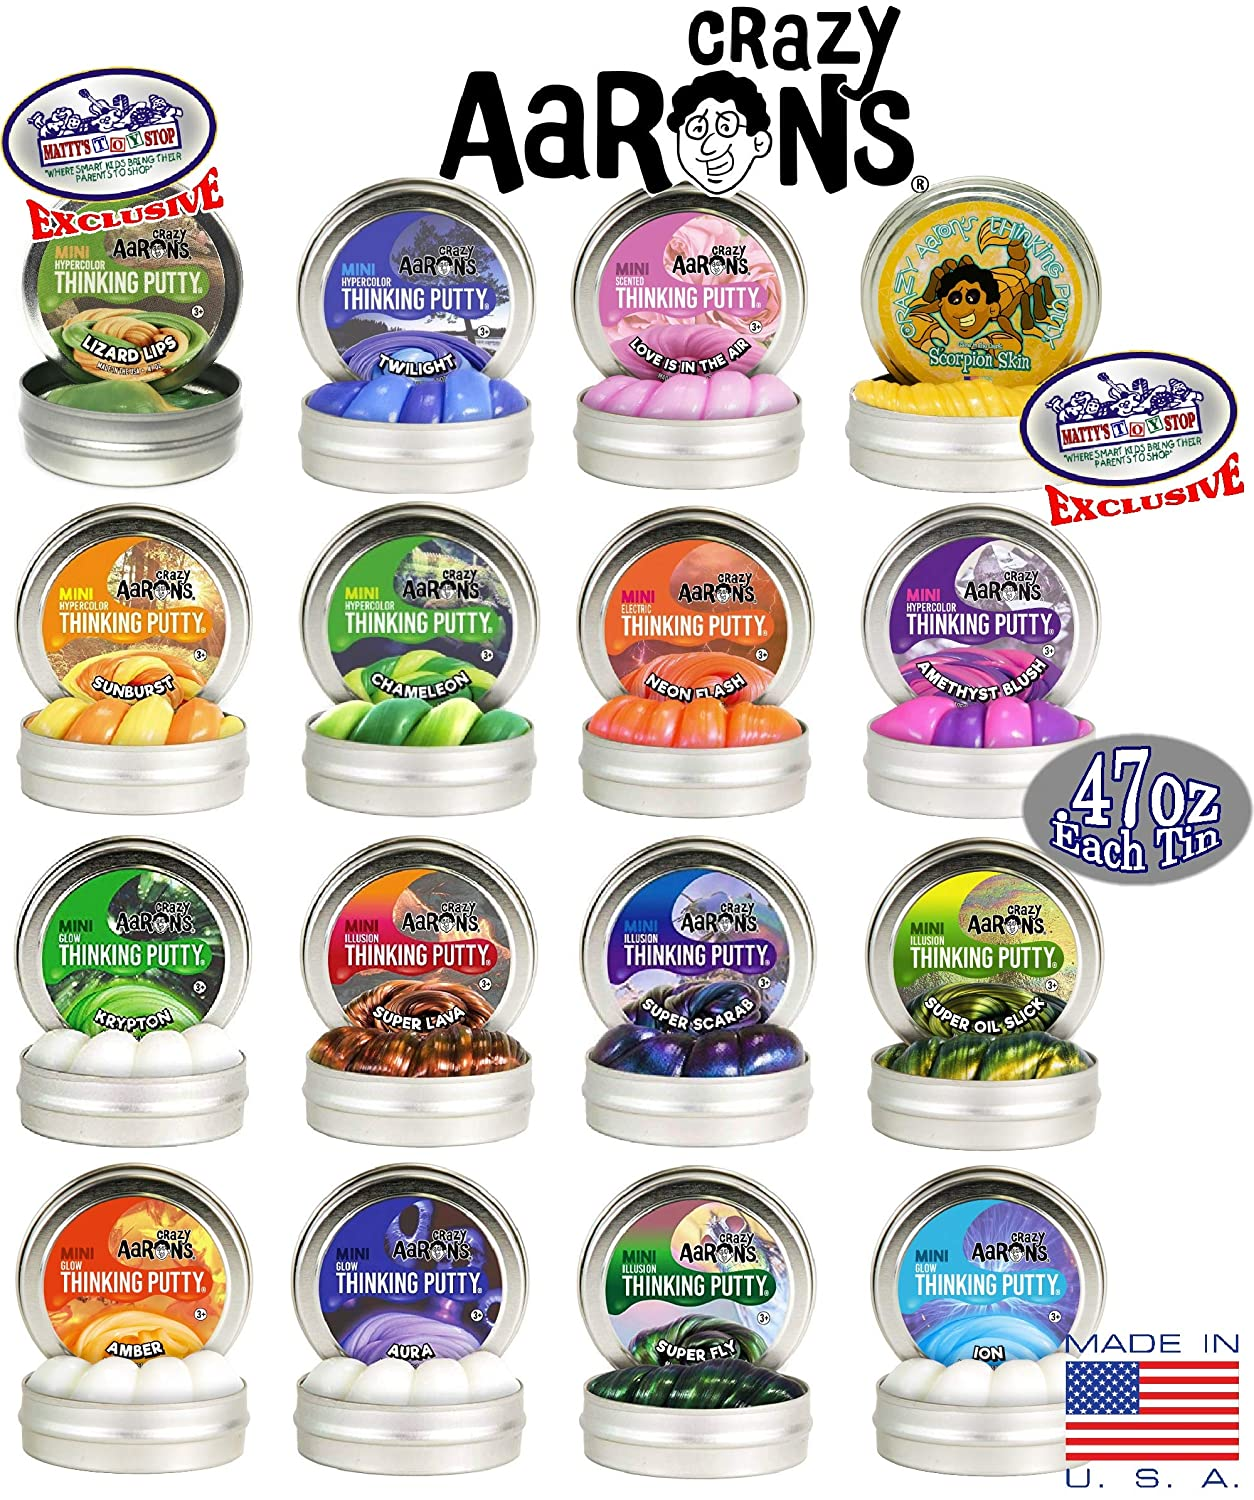 Com Crazy Aaron S Thinking Putty Mini Tins Complete Gift Set Bundle Featuring Hypercolor Glow In The Dark Super Illusion Electric Color Scented